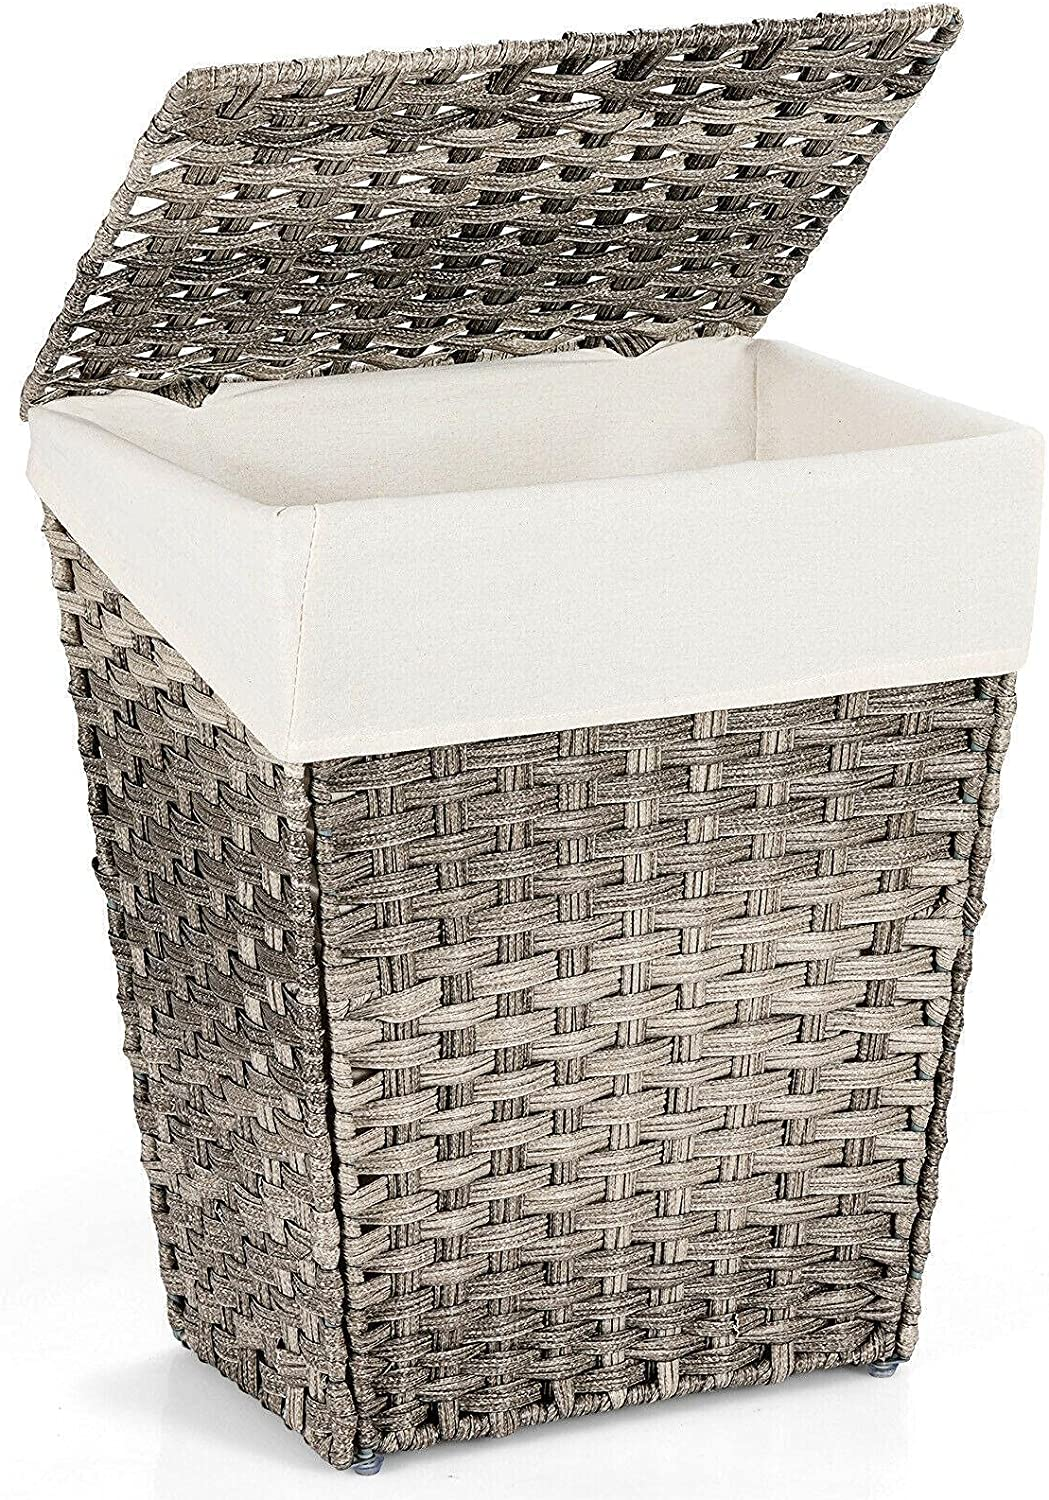 Handwoven Laundry Hamper Foldable w Removable Popular overseas Lid Max 67% OFF Liner Handl